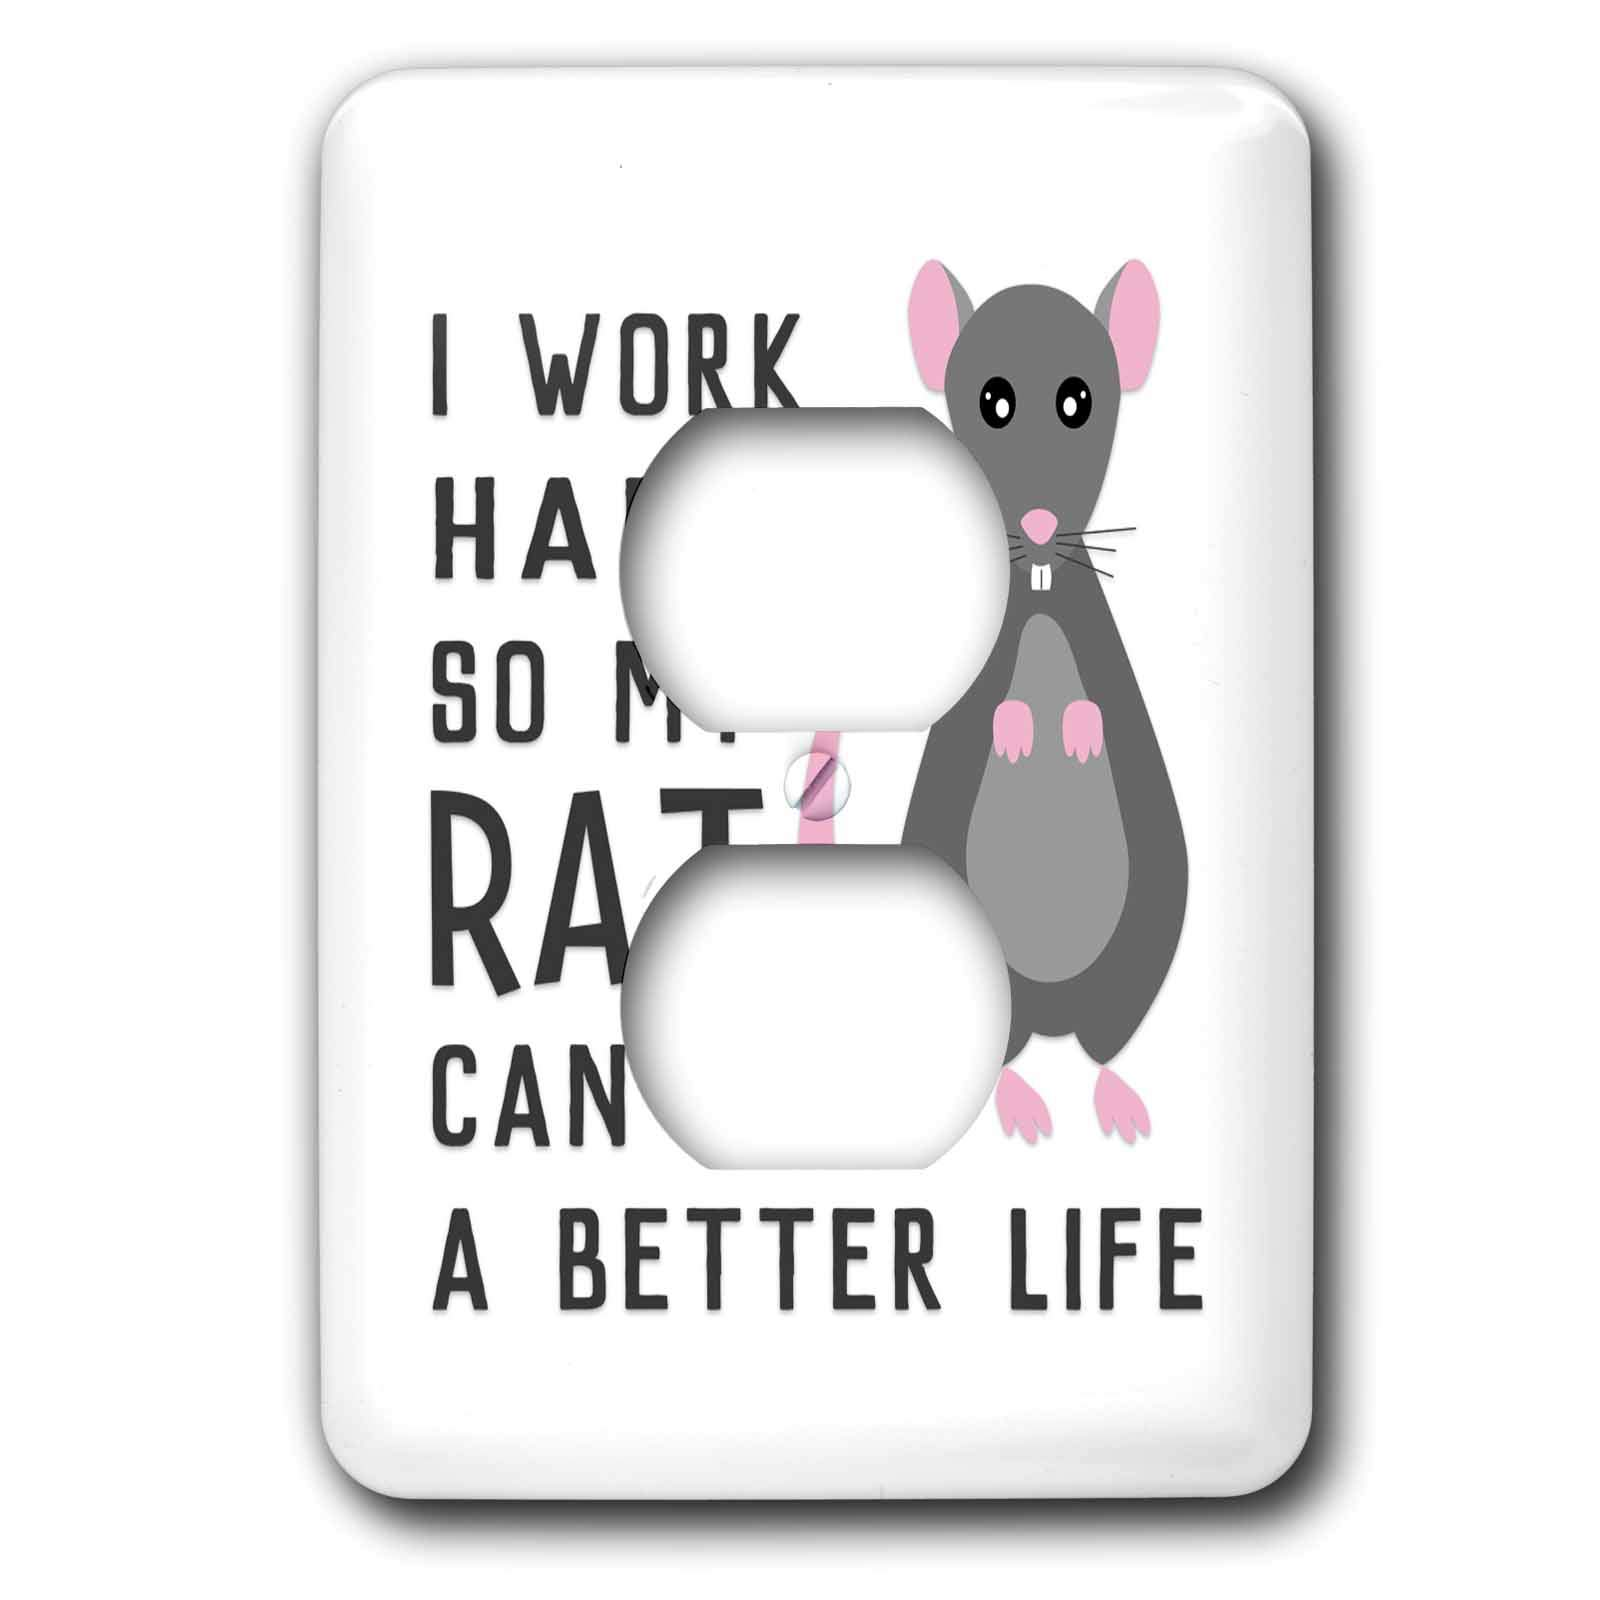 3dRose Janna Salak Designs Text Art - I Work Hard So My Pet Rat Can Have A Better Life - Light Switch Covers - 2 plug outlet cover (lsp_289661_6)